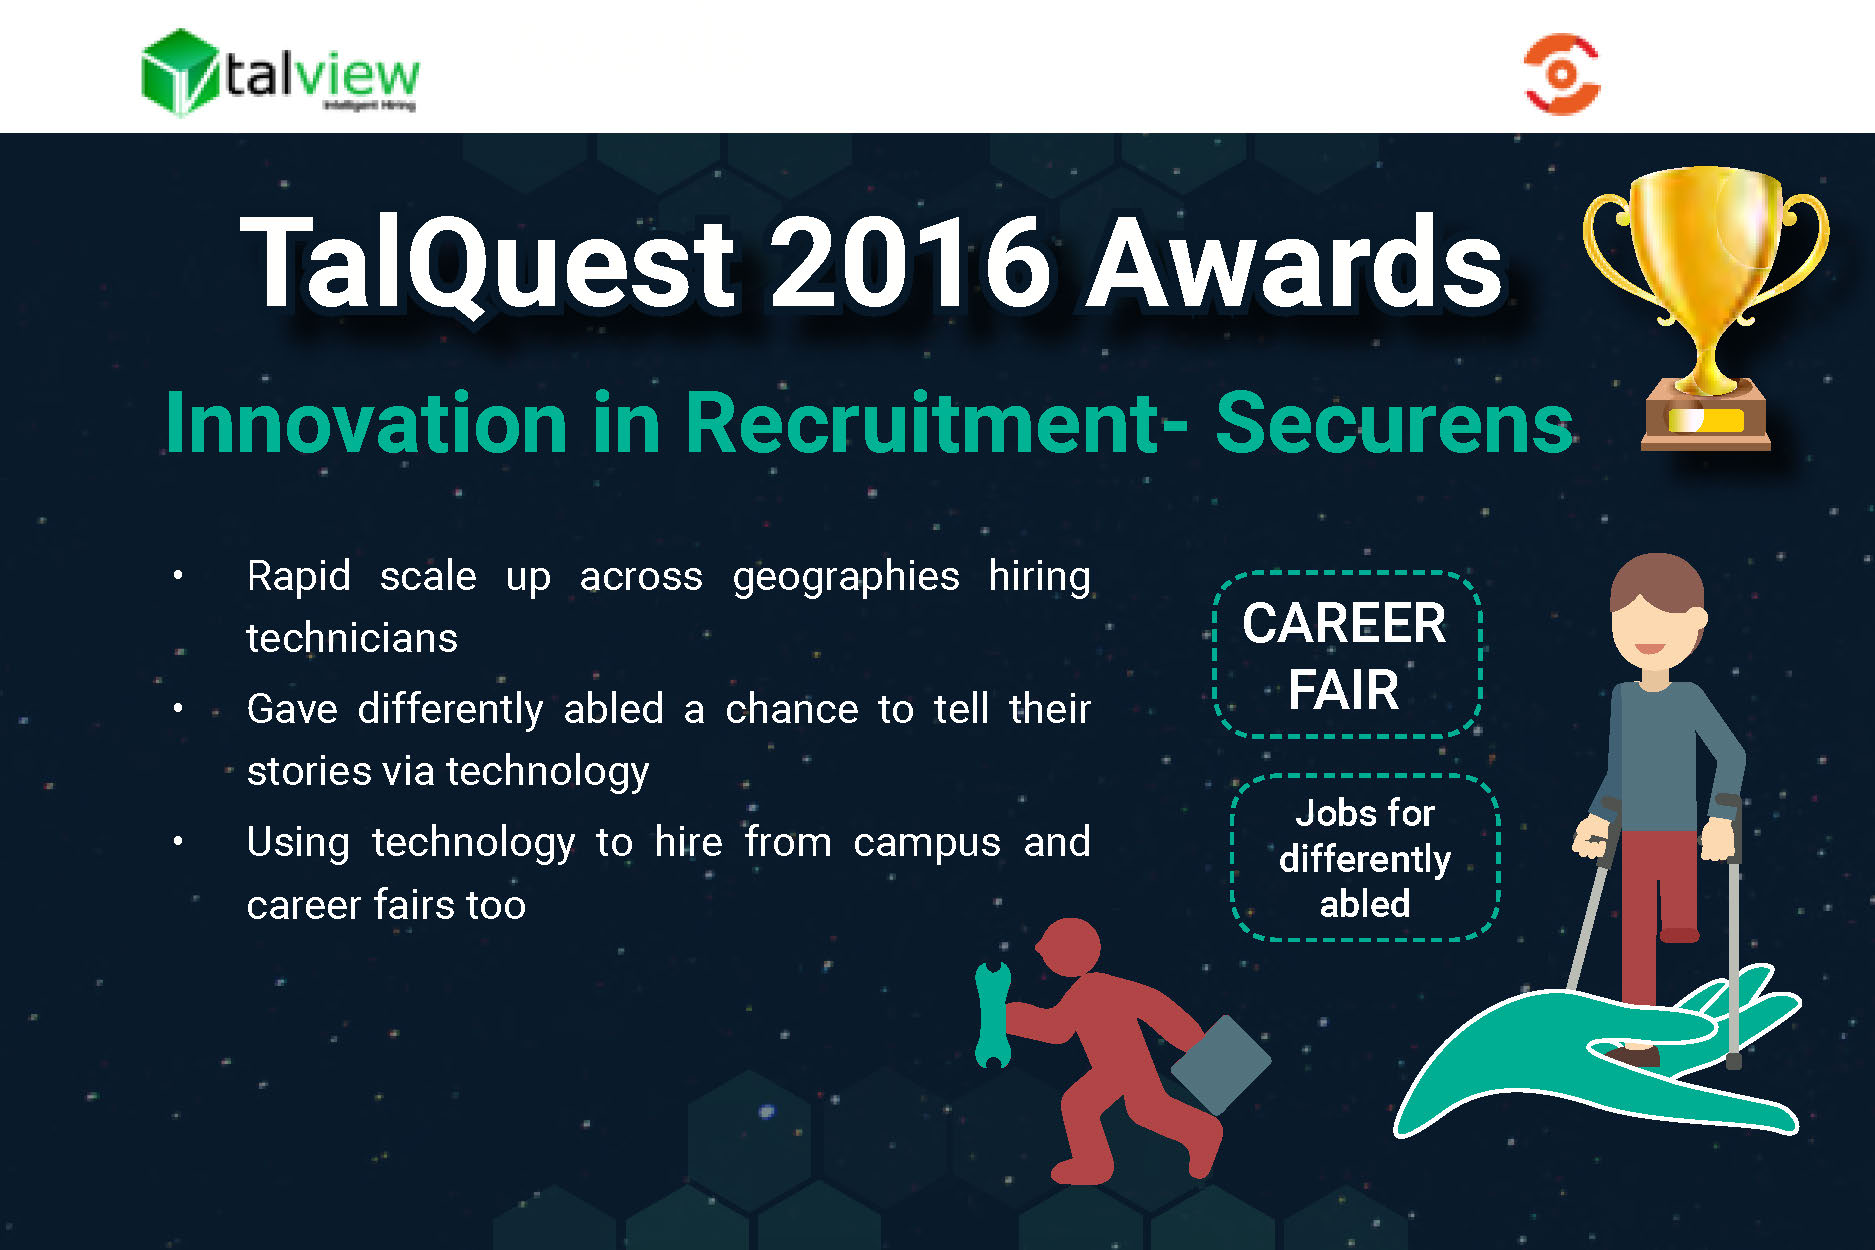 Securens_Innovation_in_Recruitment_Award.jpg